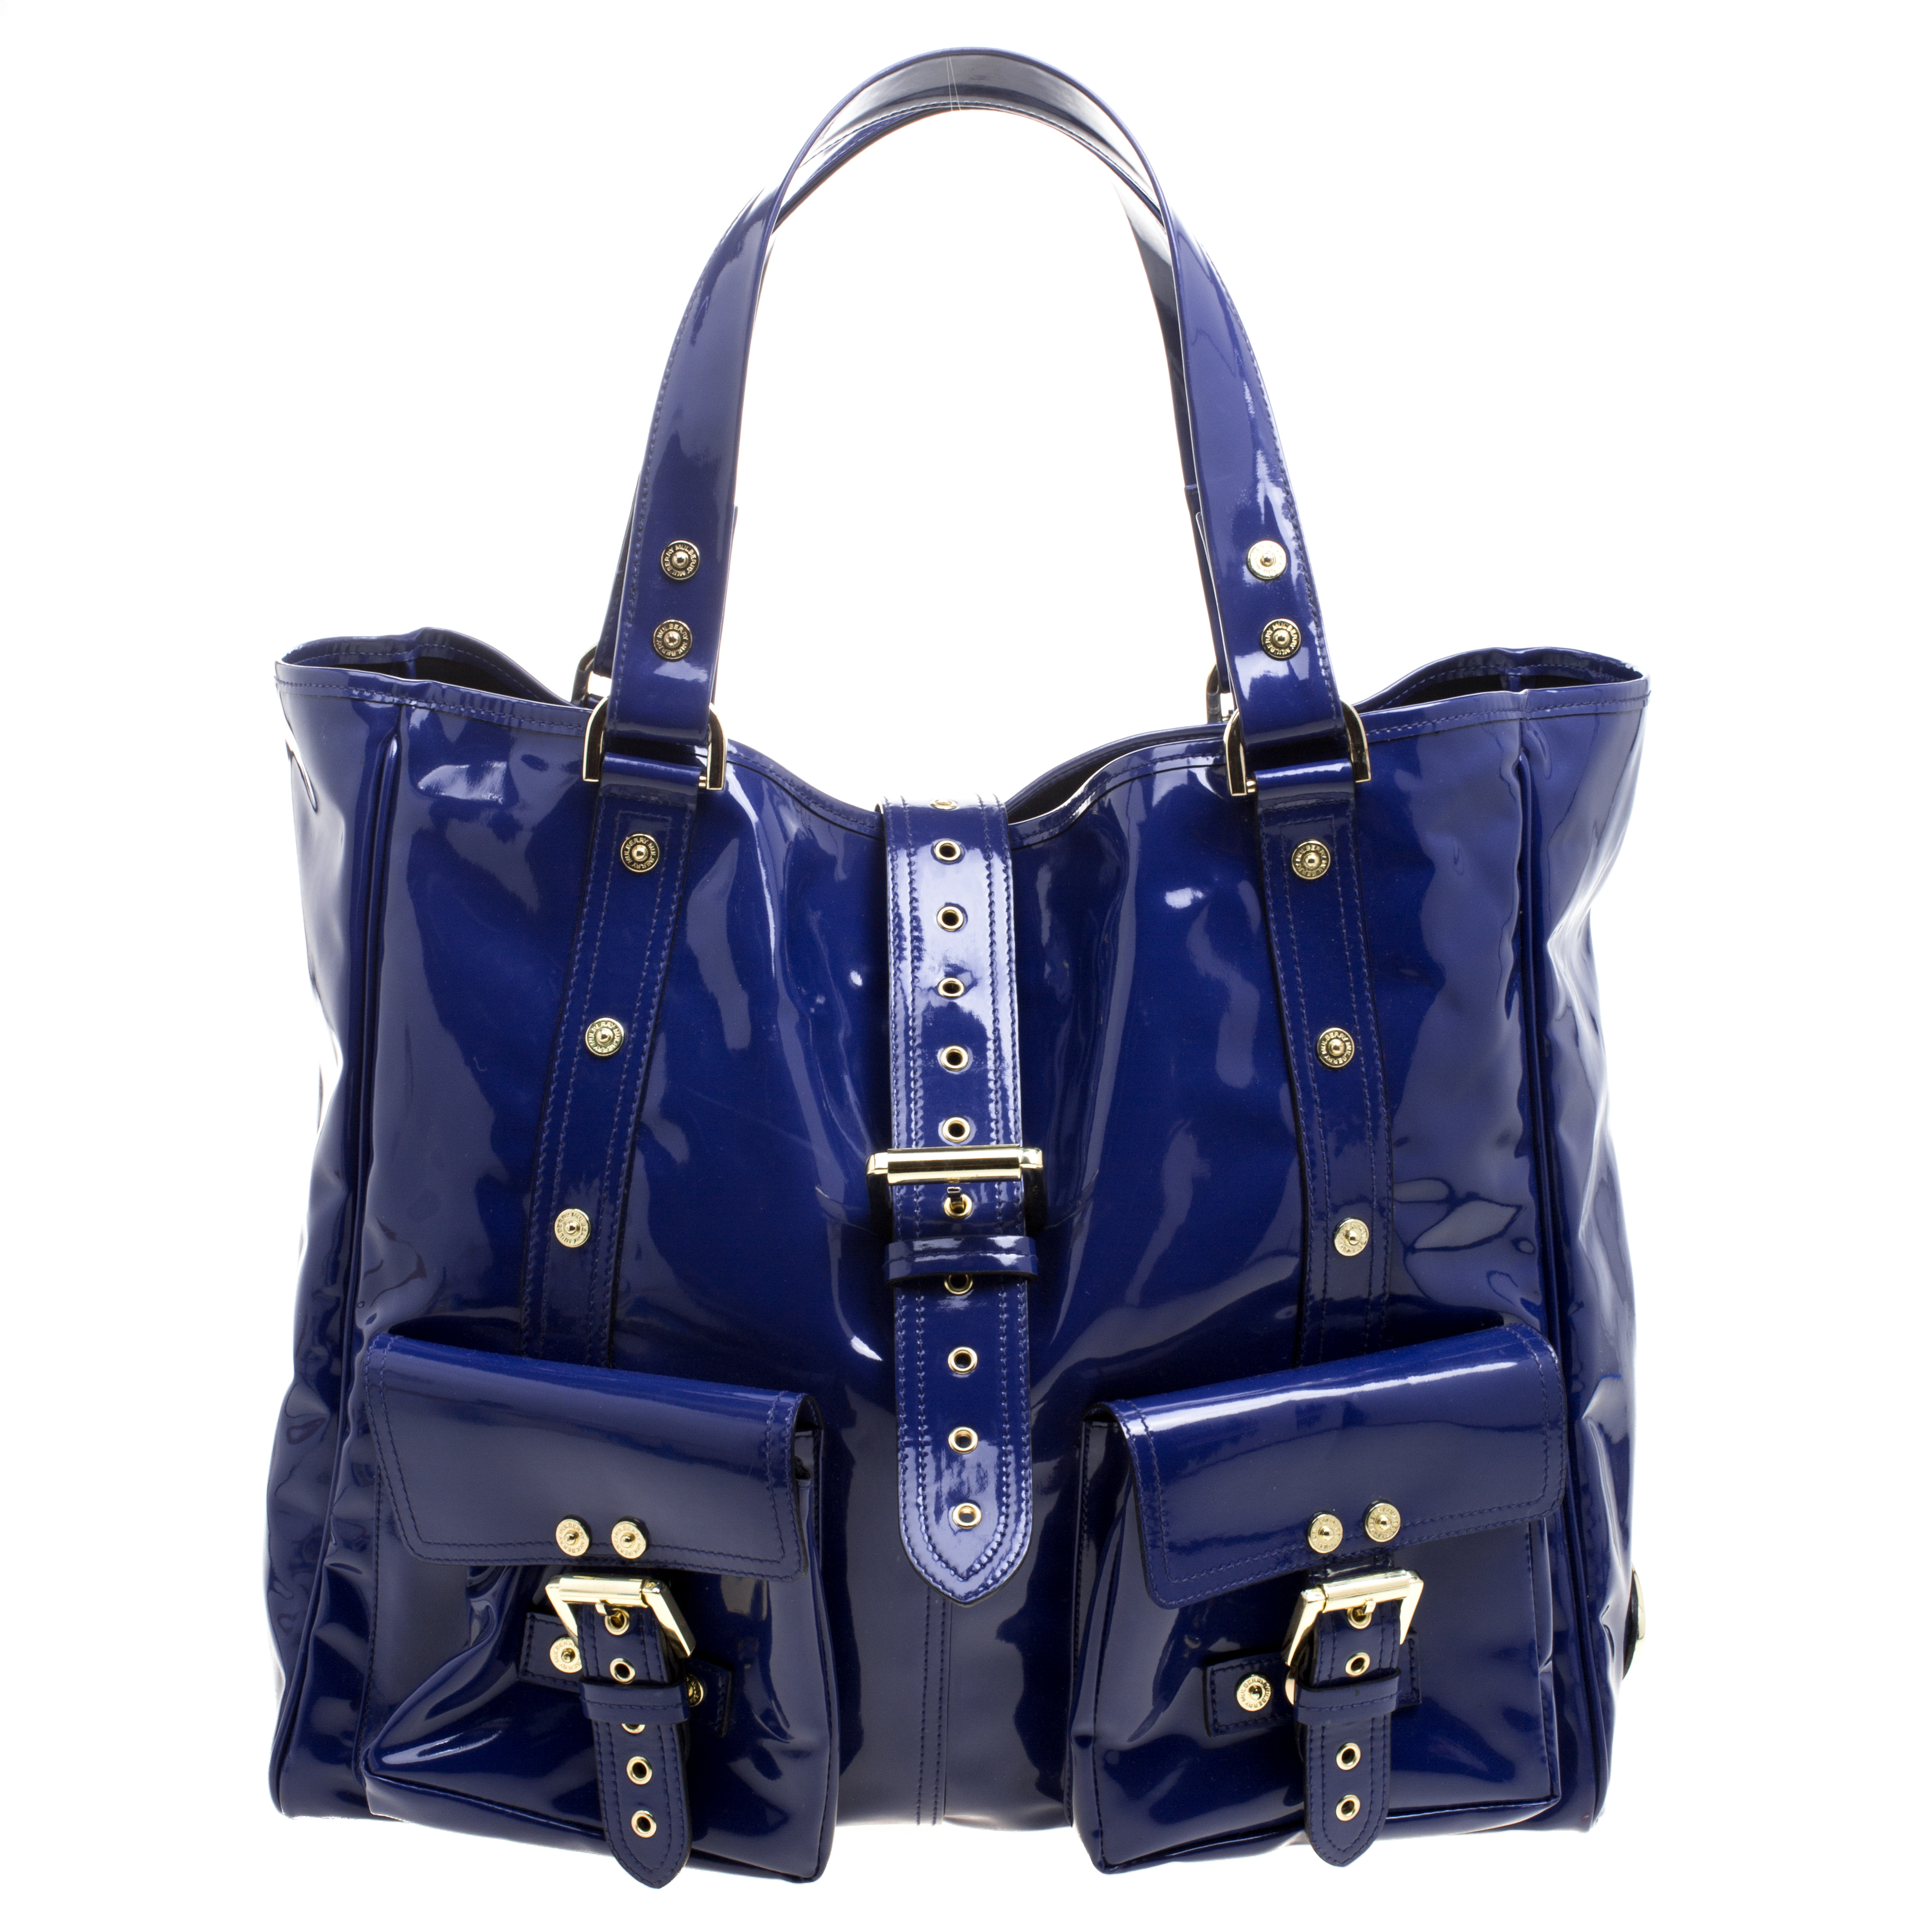 87f7e07731ce Buy Mulberry Blue Patent Leather Roxanne Tote 118243 at best price